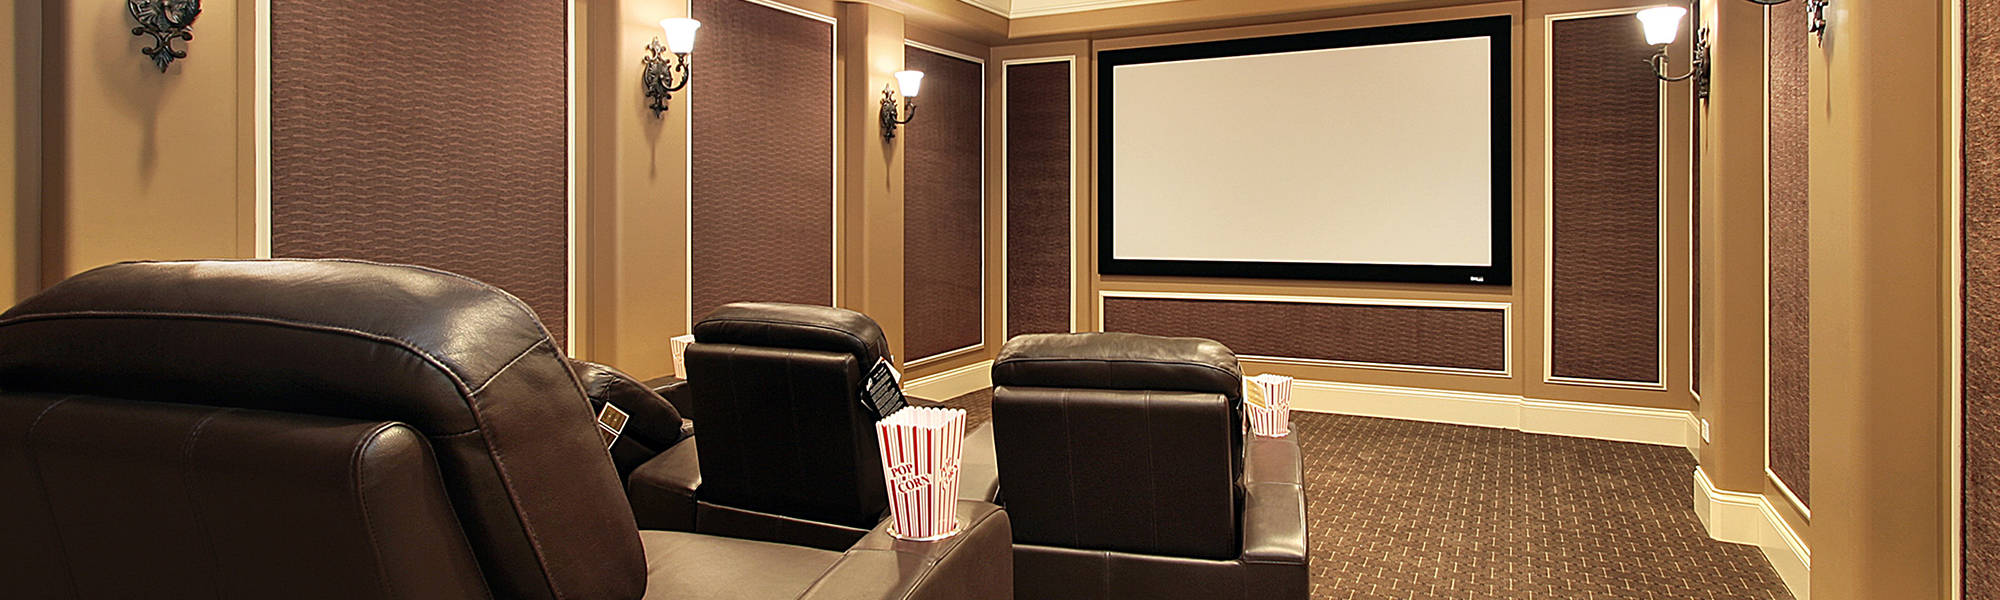 Residential Entertainment Room